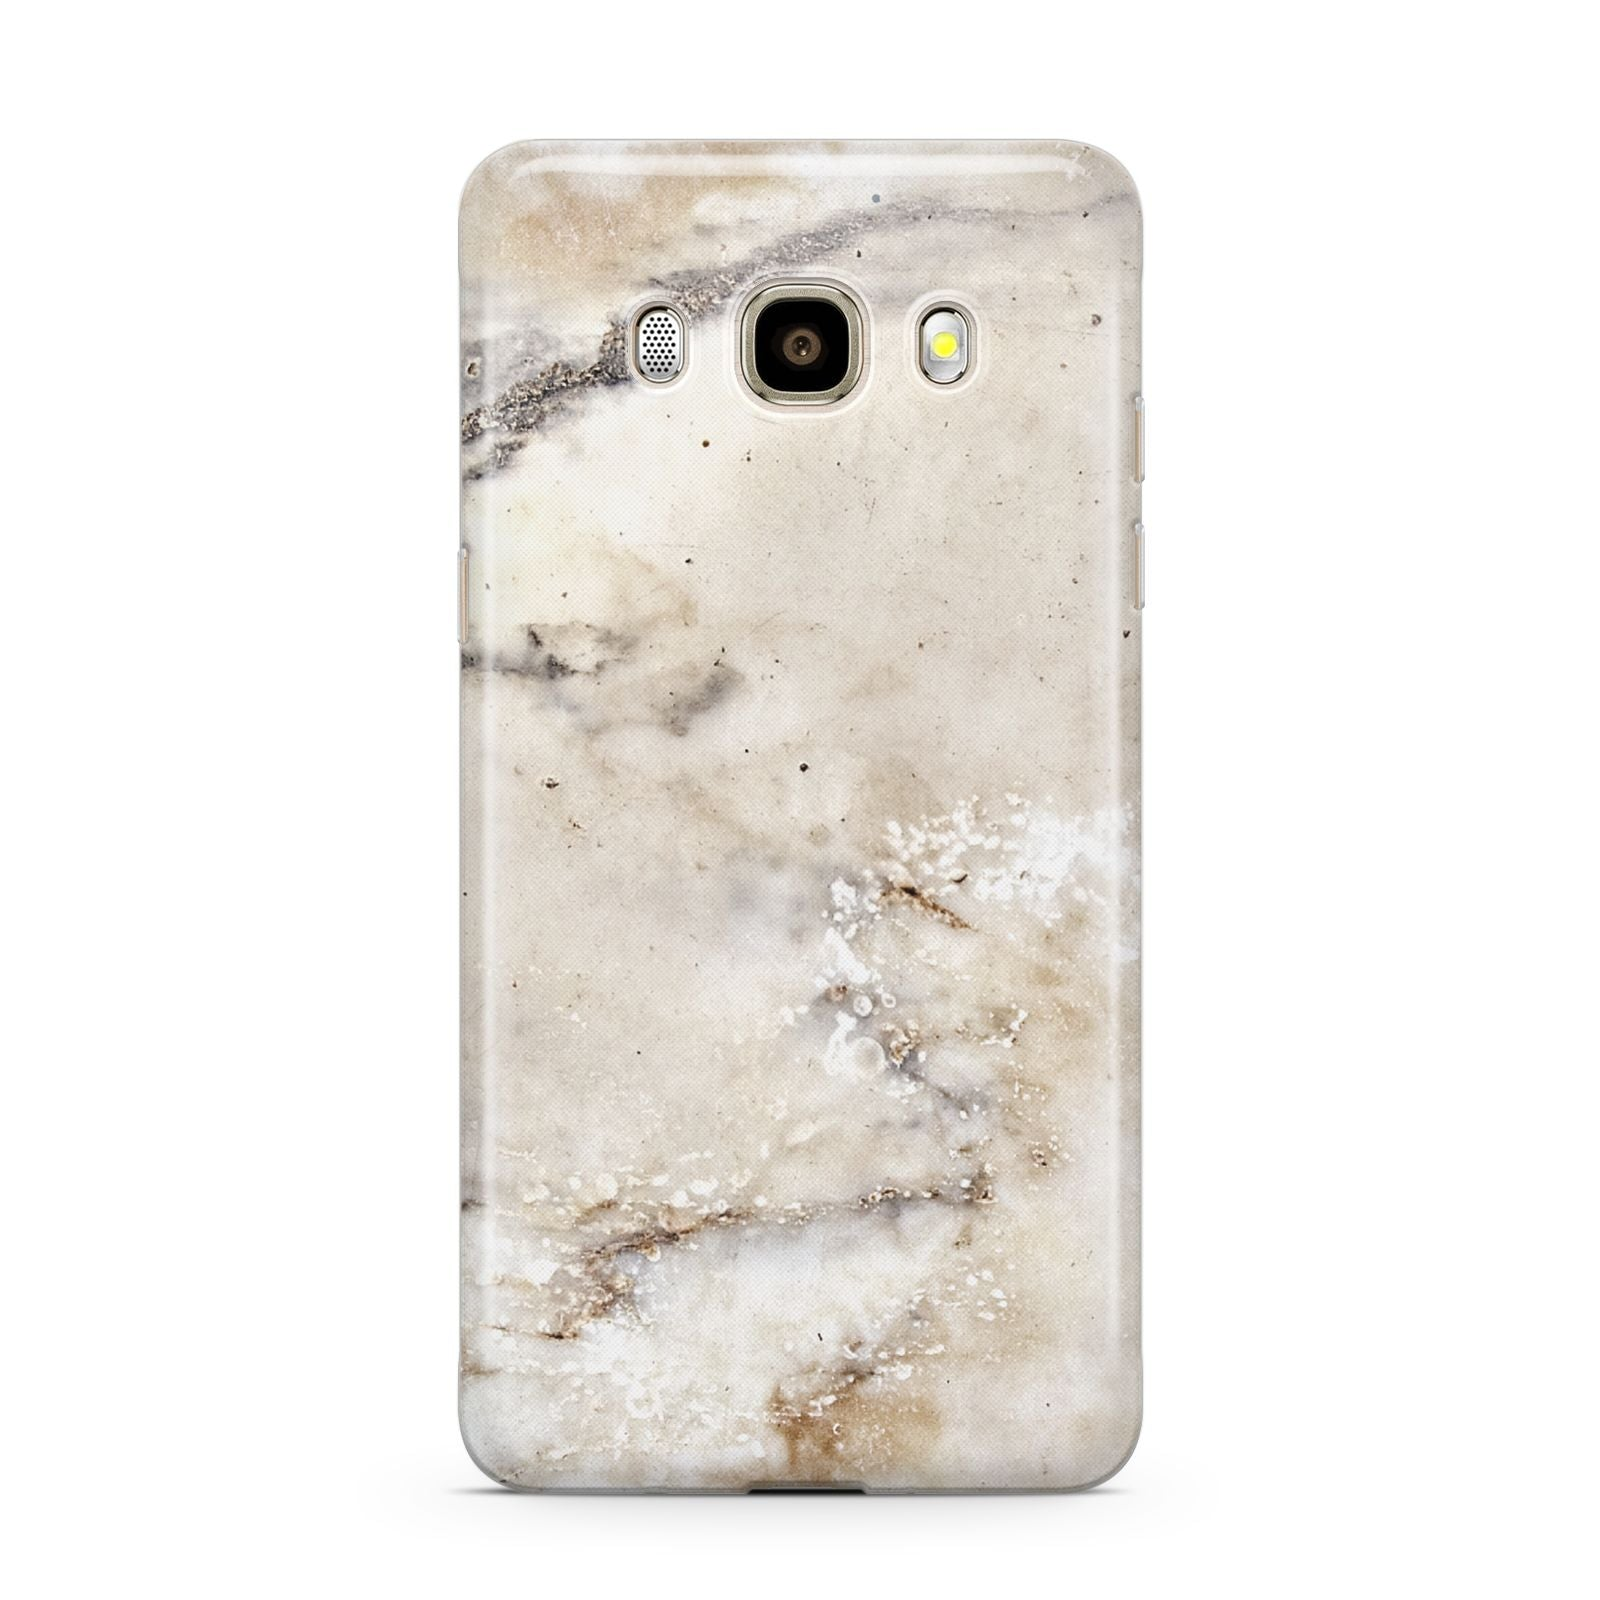 Faux Marble Effect Print Samsung Galaxy J7 2016 Case on gold phone